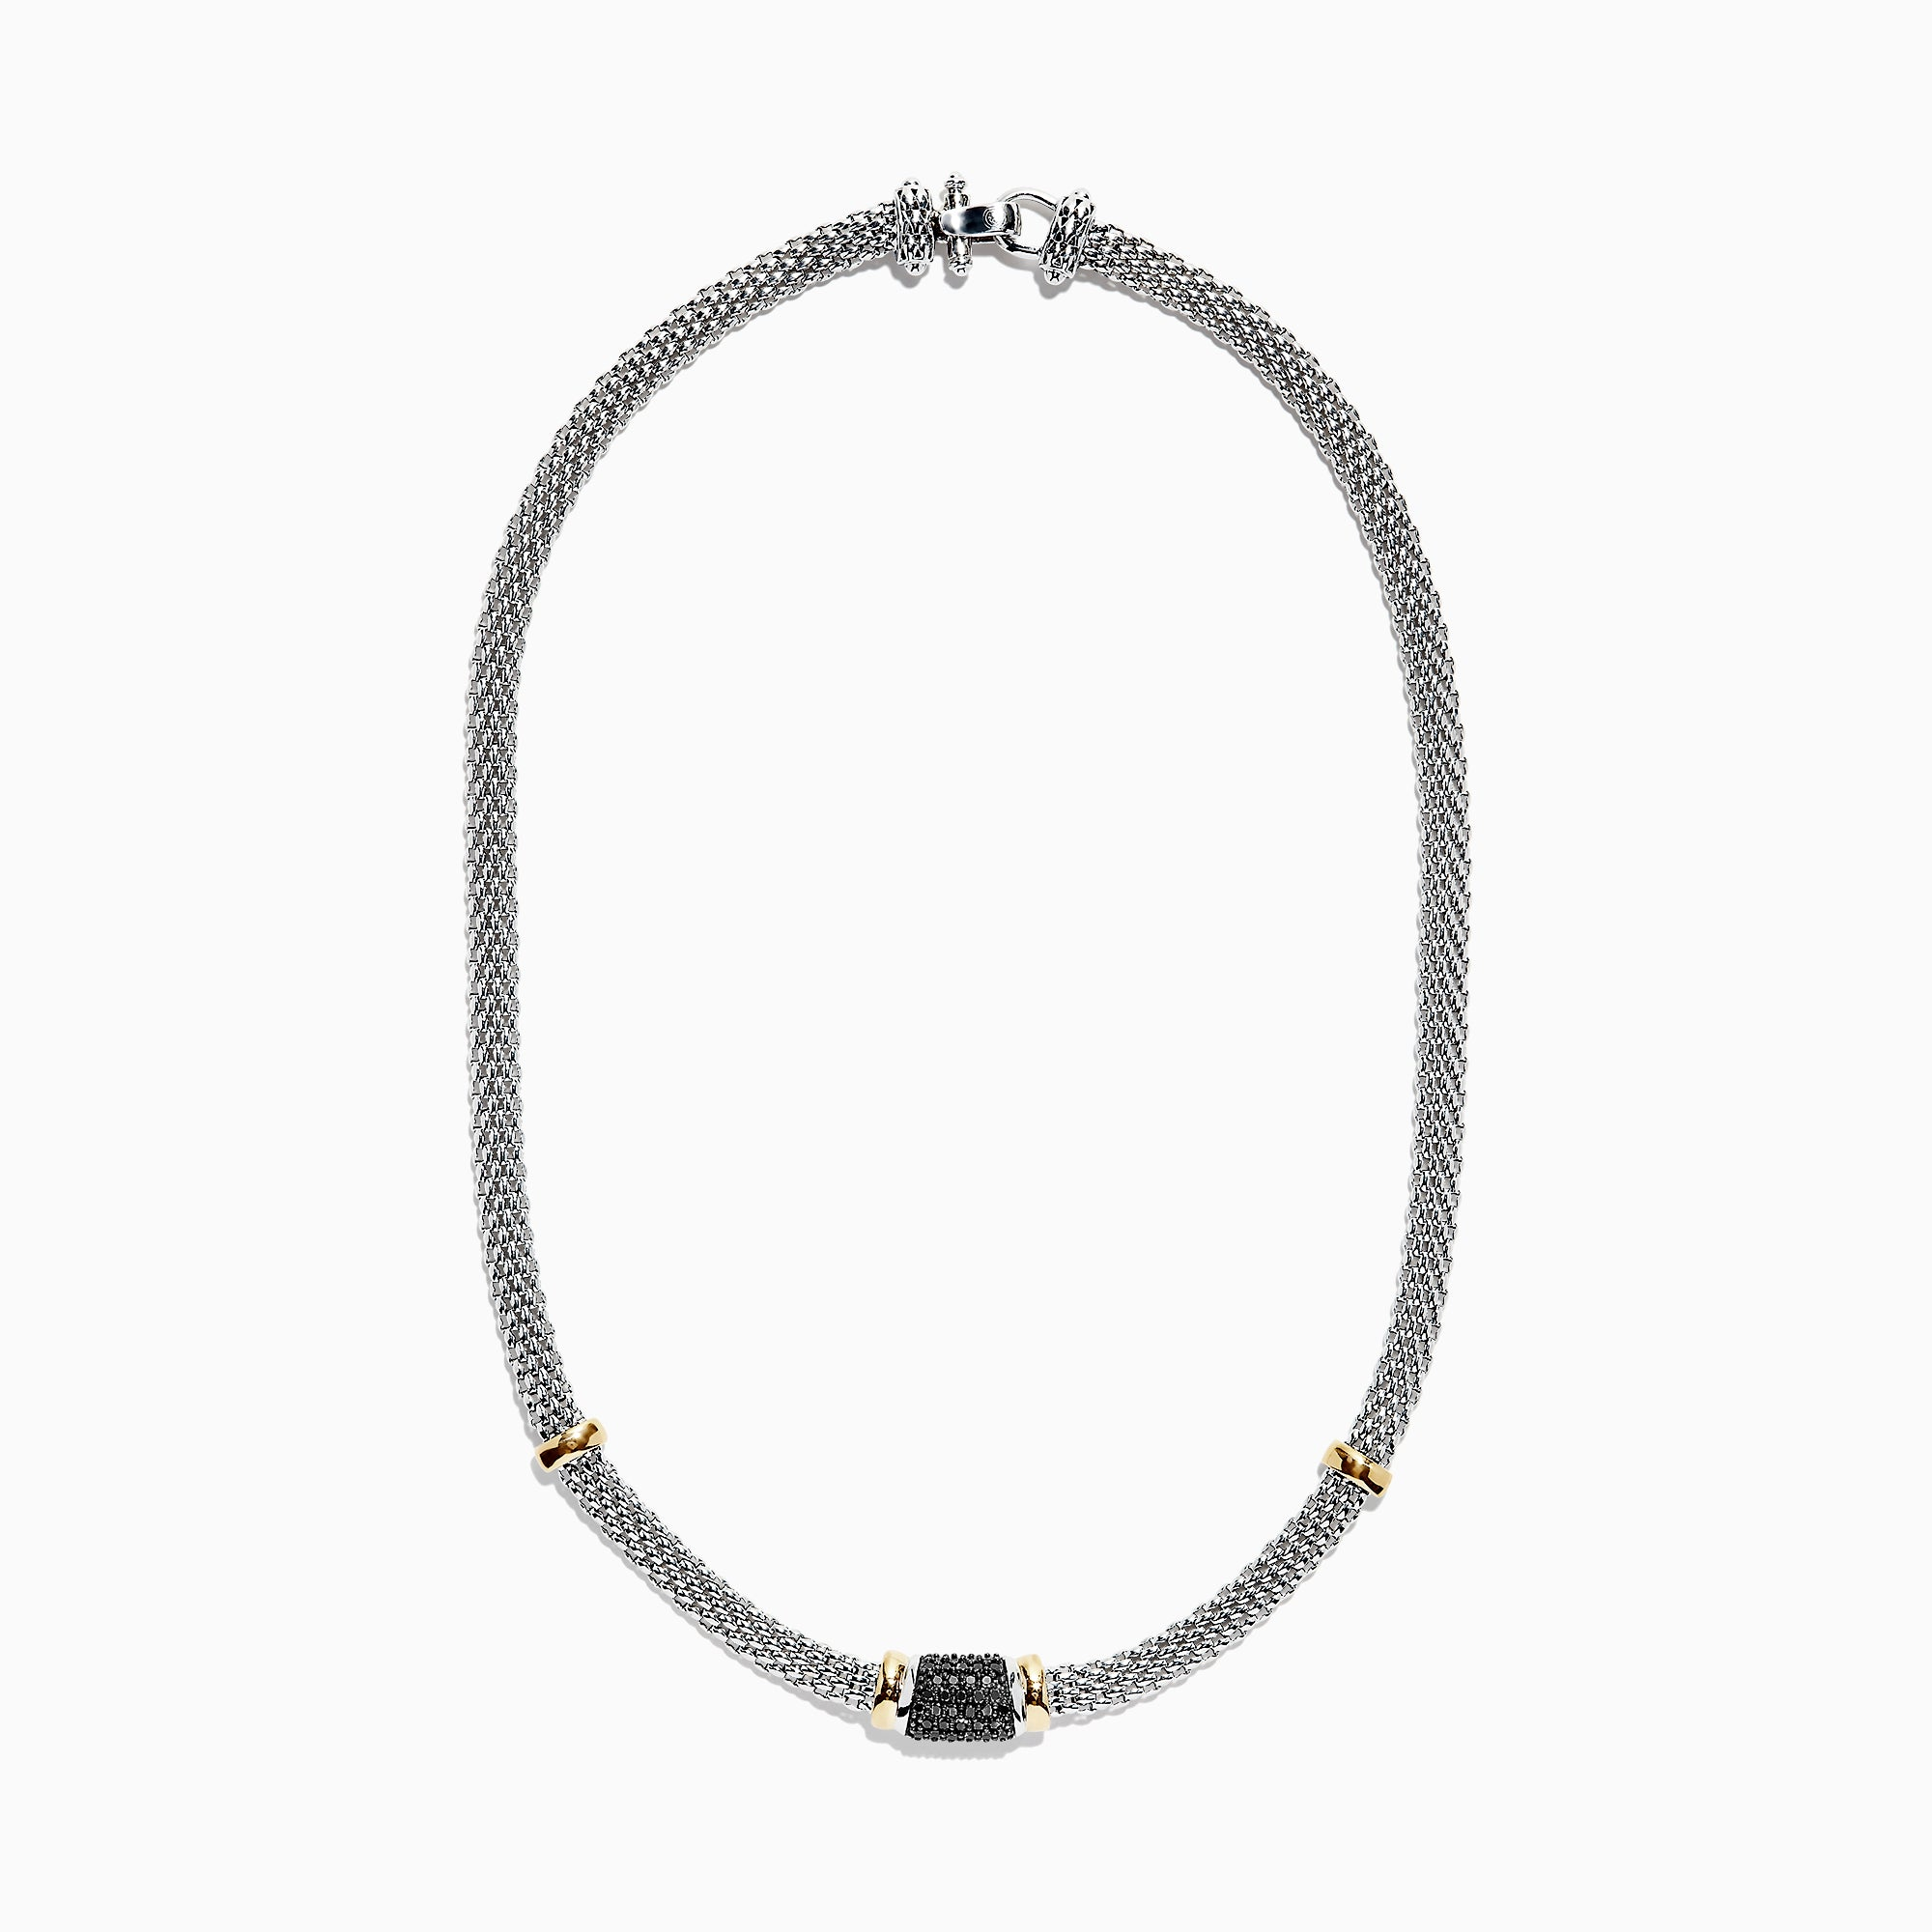 Effy 925 Sterling Silver & 18K Gold Black Diamond Woven Necklace, 0.61 TCW